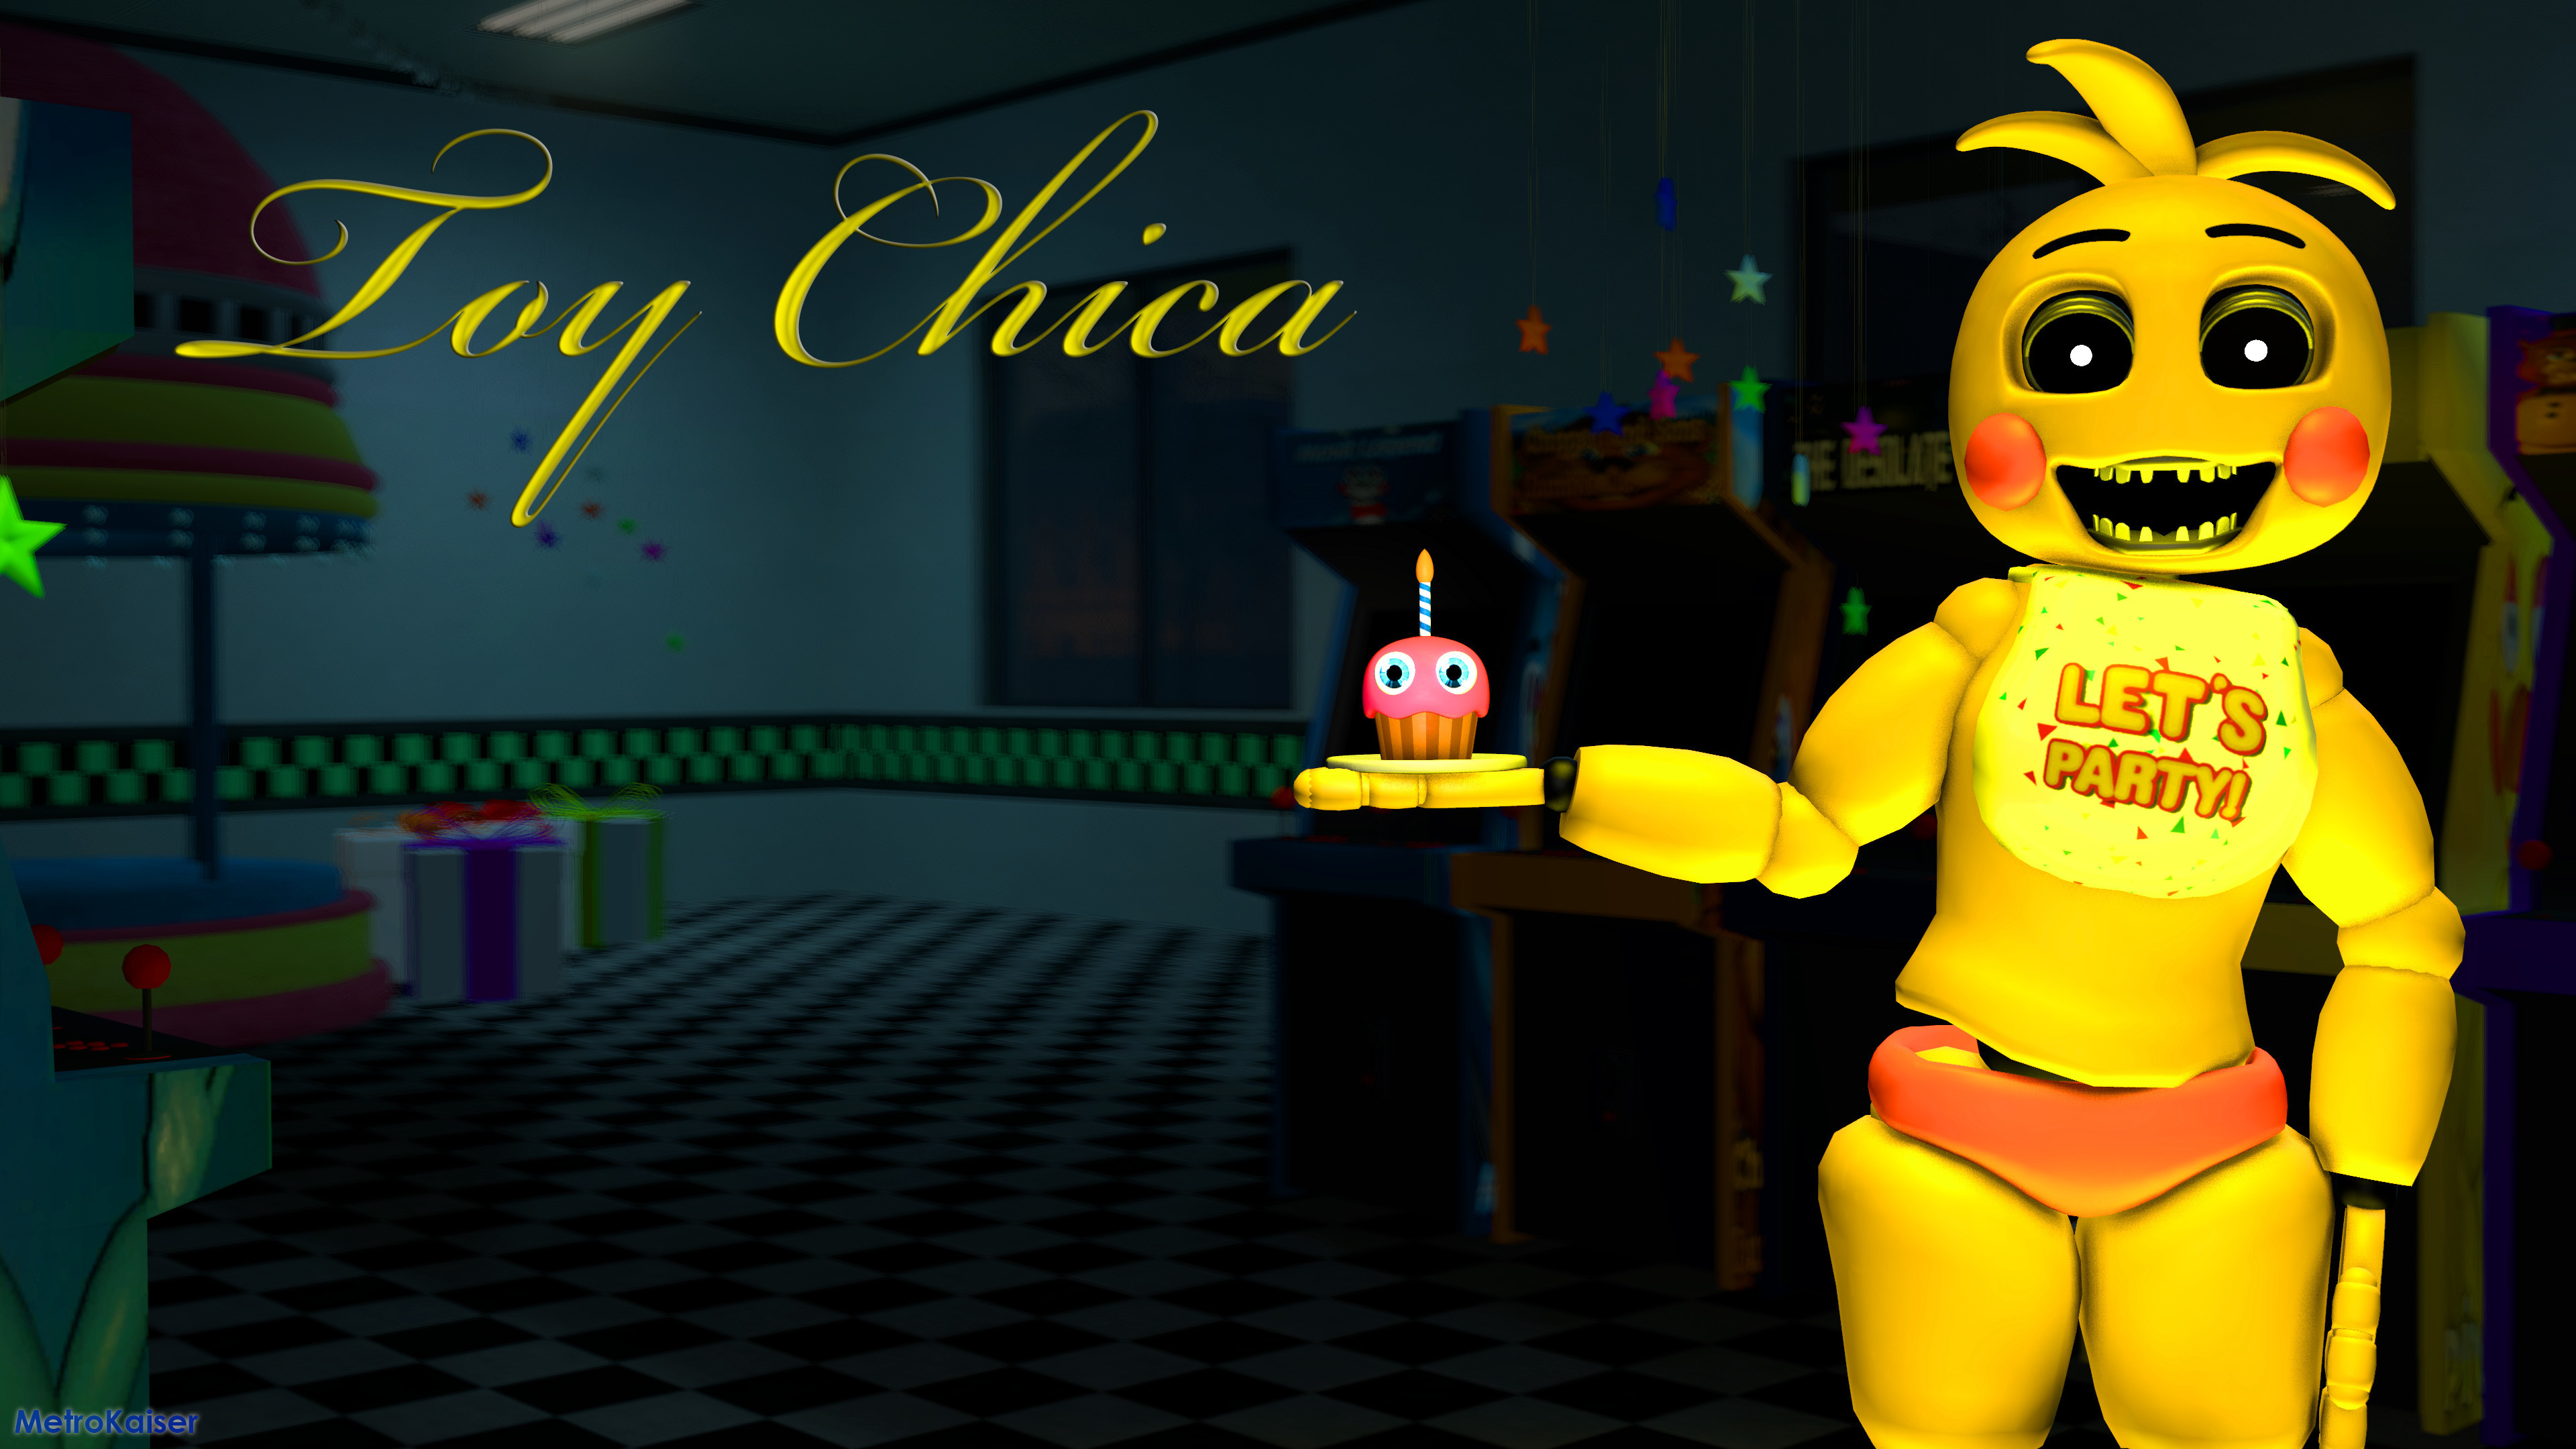 Fnaf Toy Chica Wallpaper (88+ images)